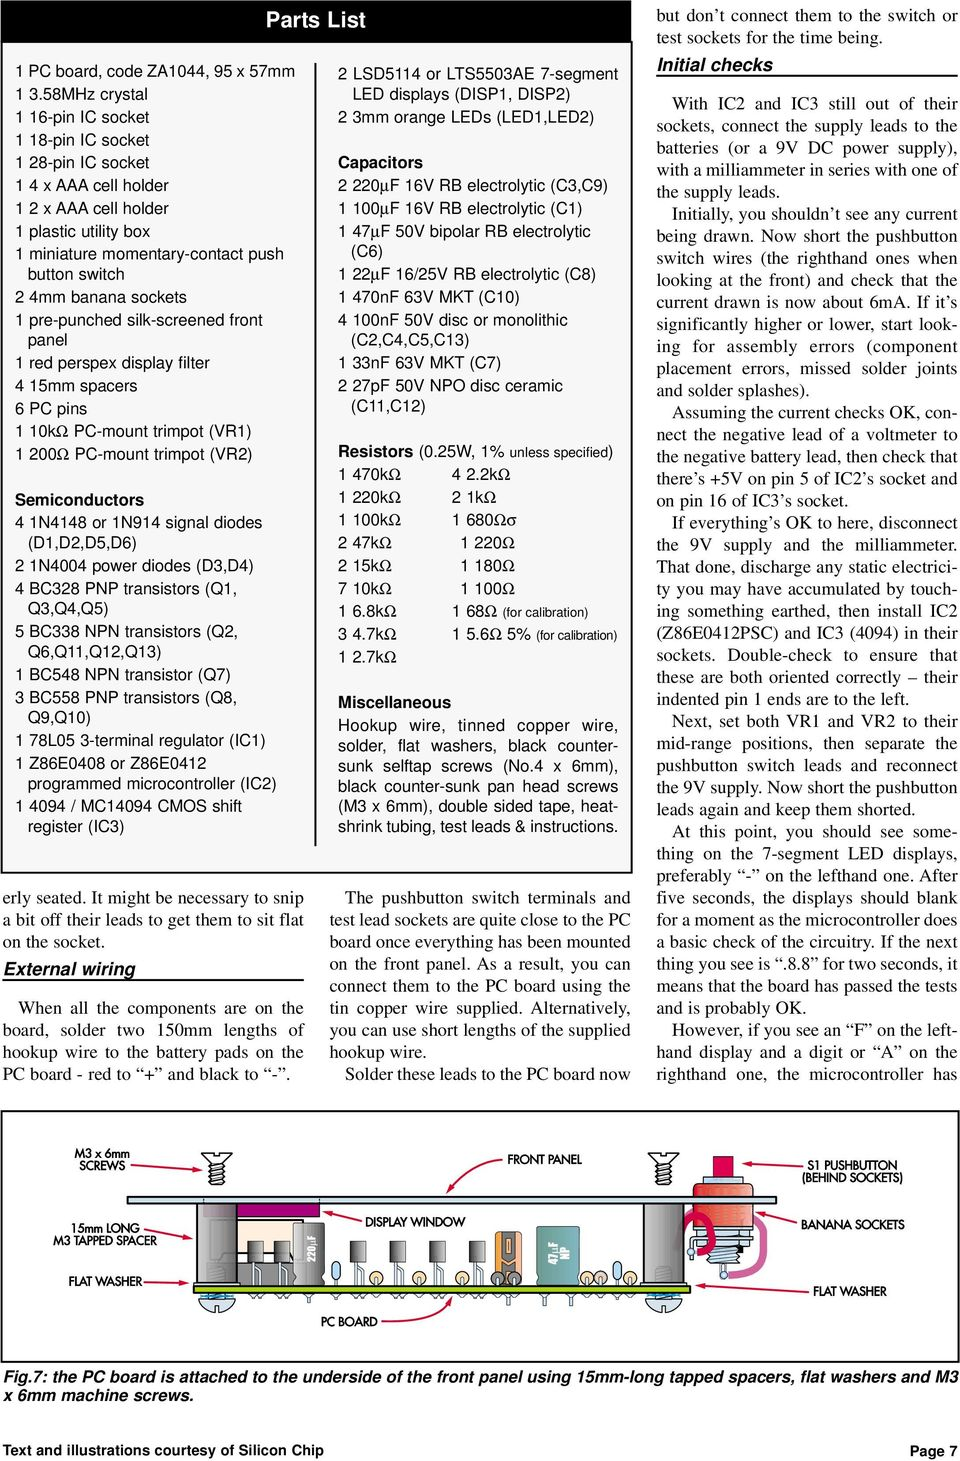 Assembly Manual Please Read Disclaimer Carefully As We Can Only Led Voltmeter Circuit D Mohankumar Battery Monitors Sockets 1 Pre Punched Silk Screened Front Panel Red Perspex Display Filter 4